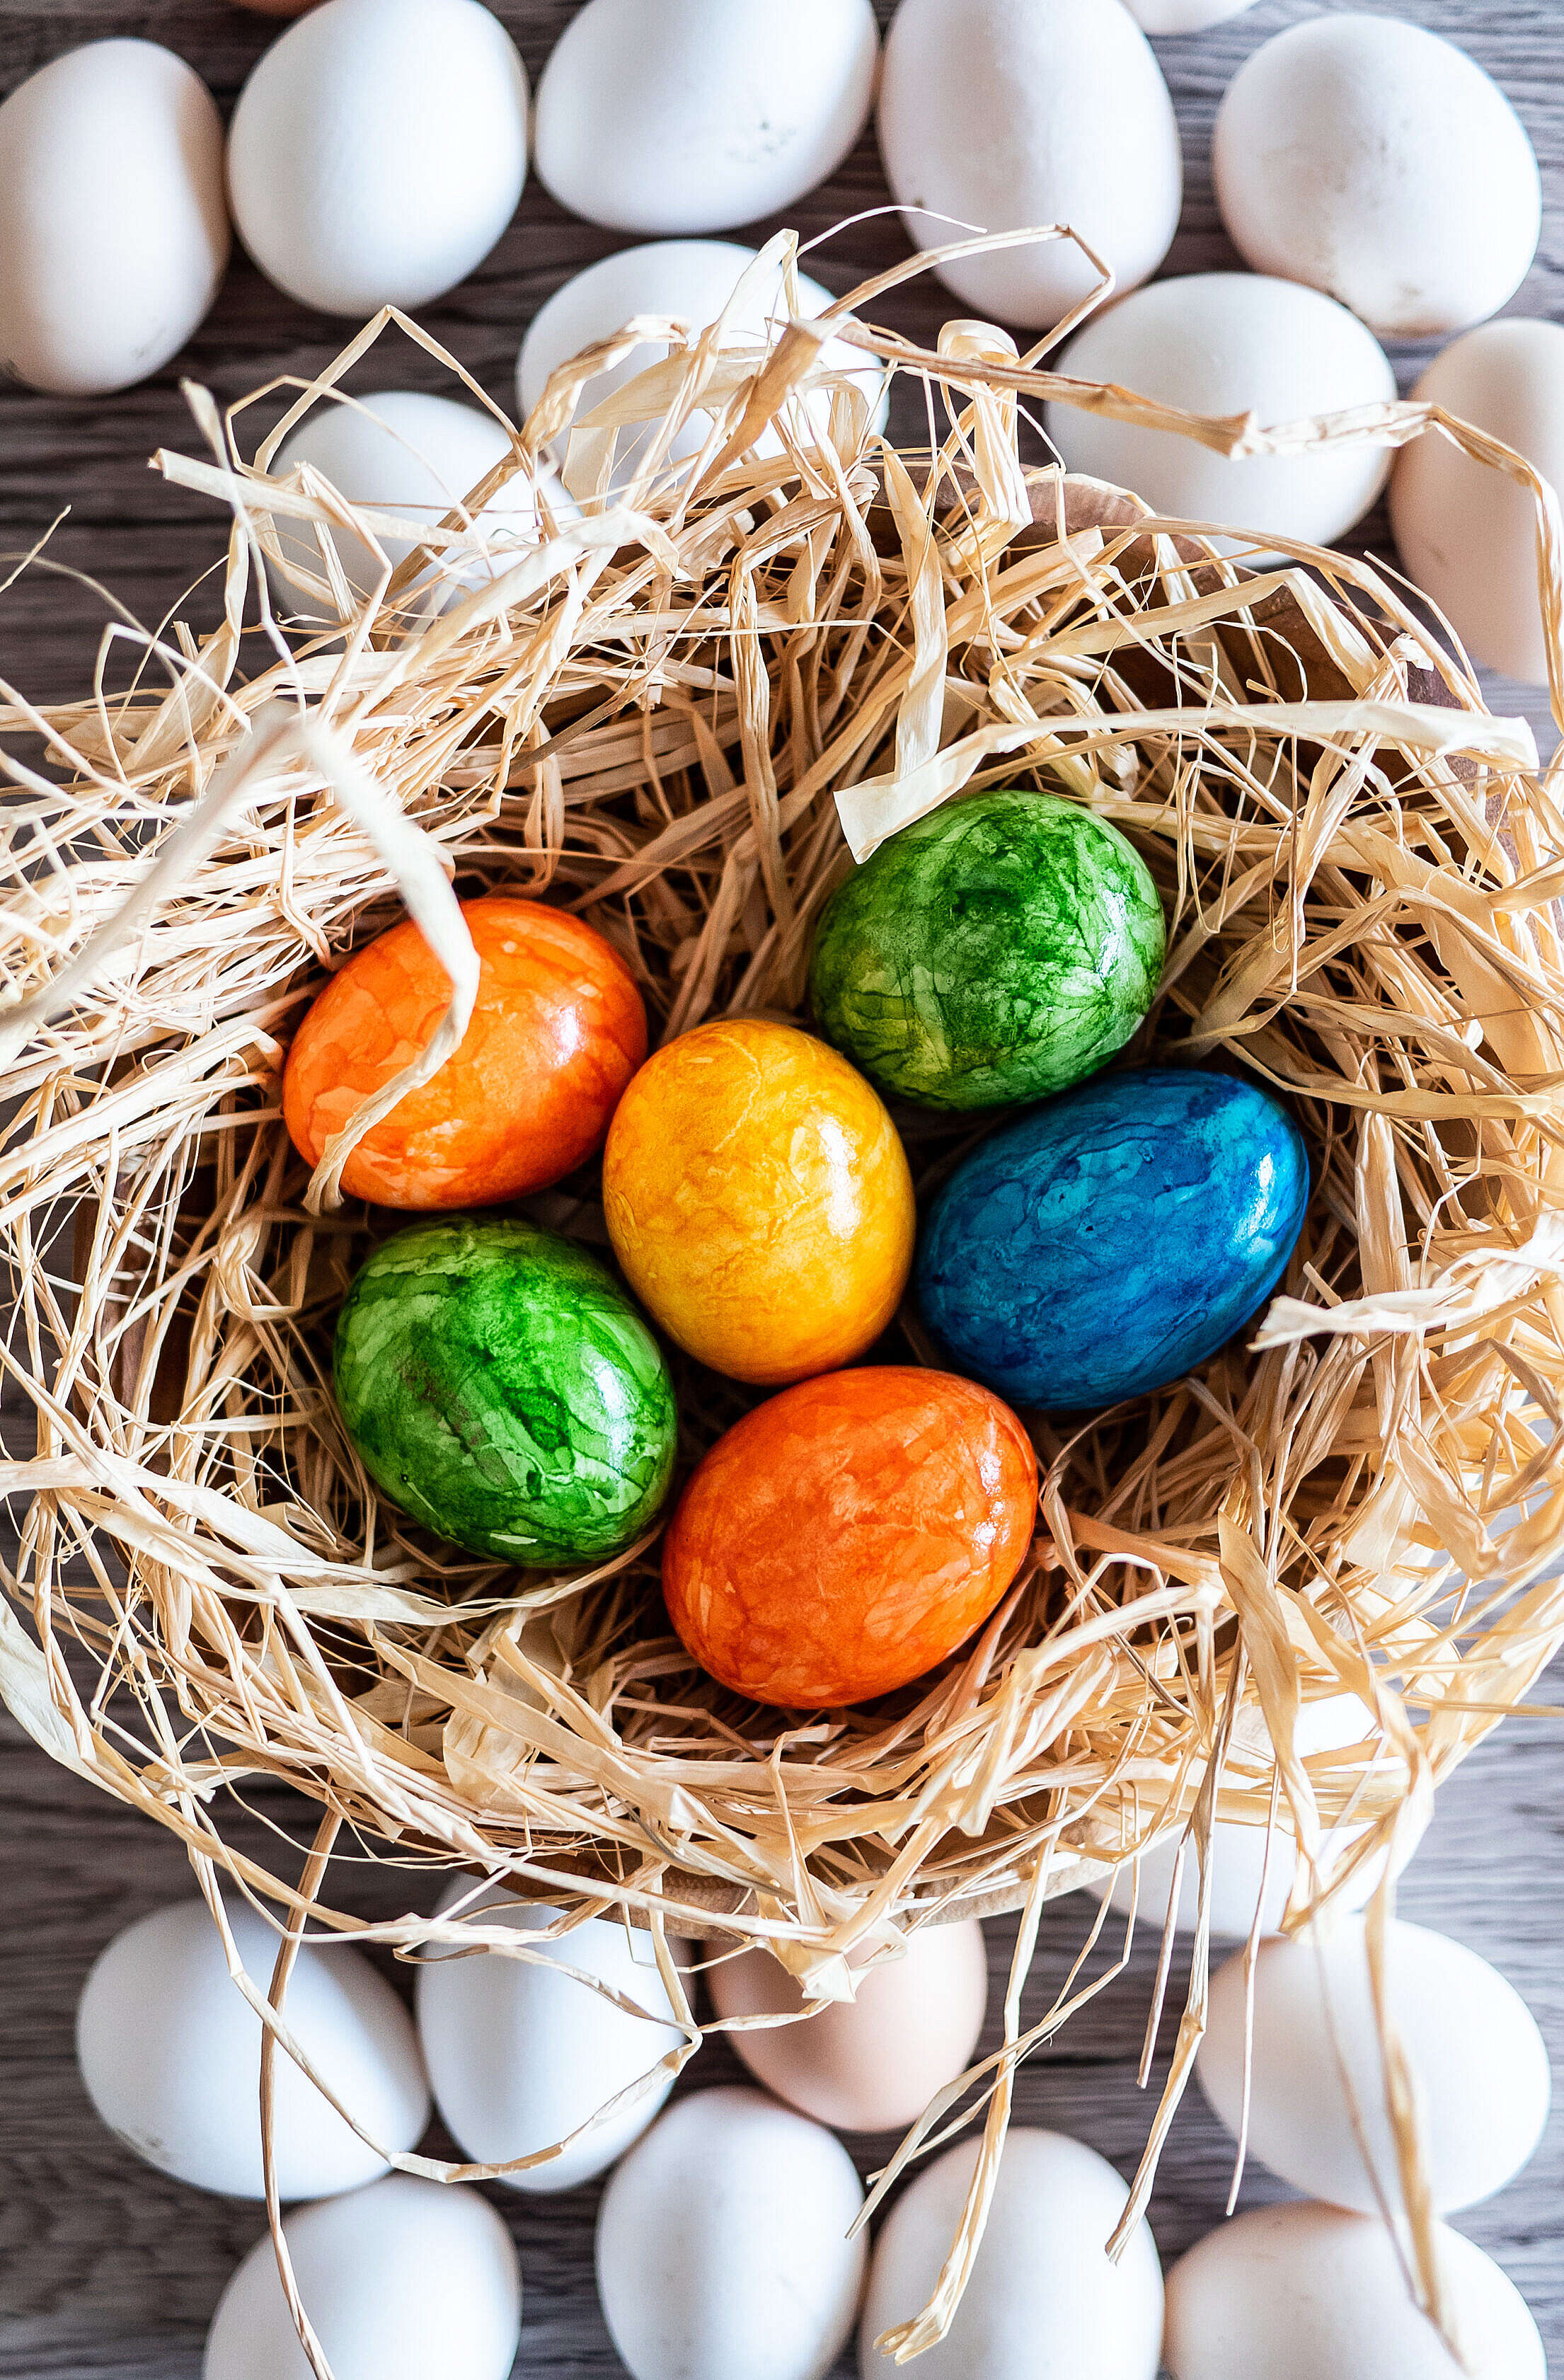 White Eggs and Colored Easter Eggs Vertical Free Stock Photo